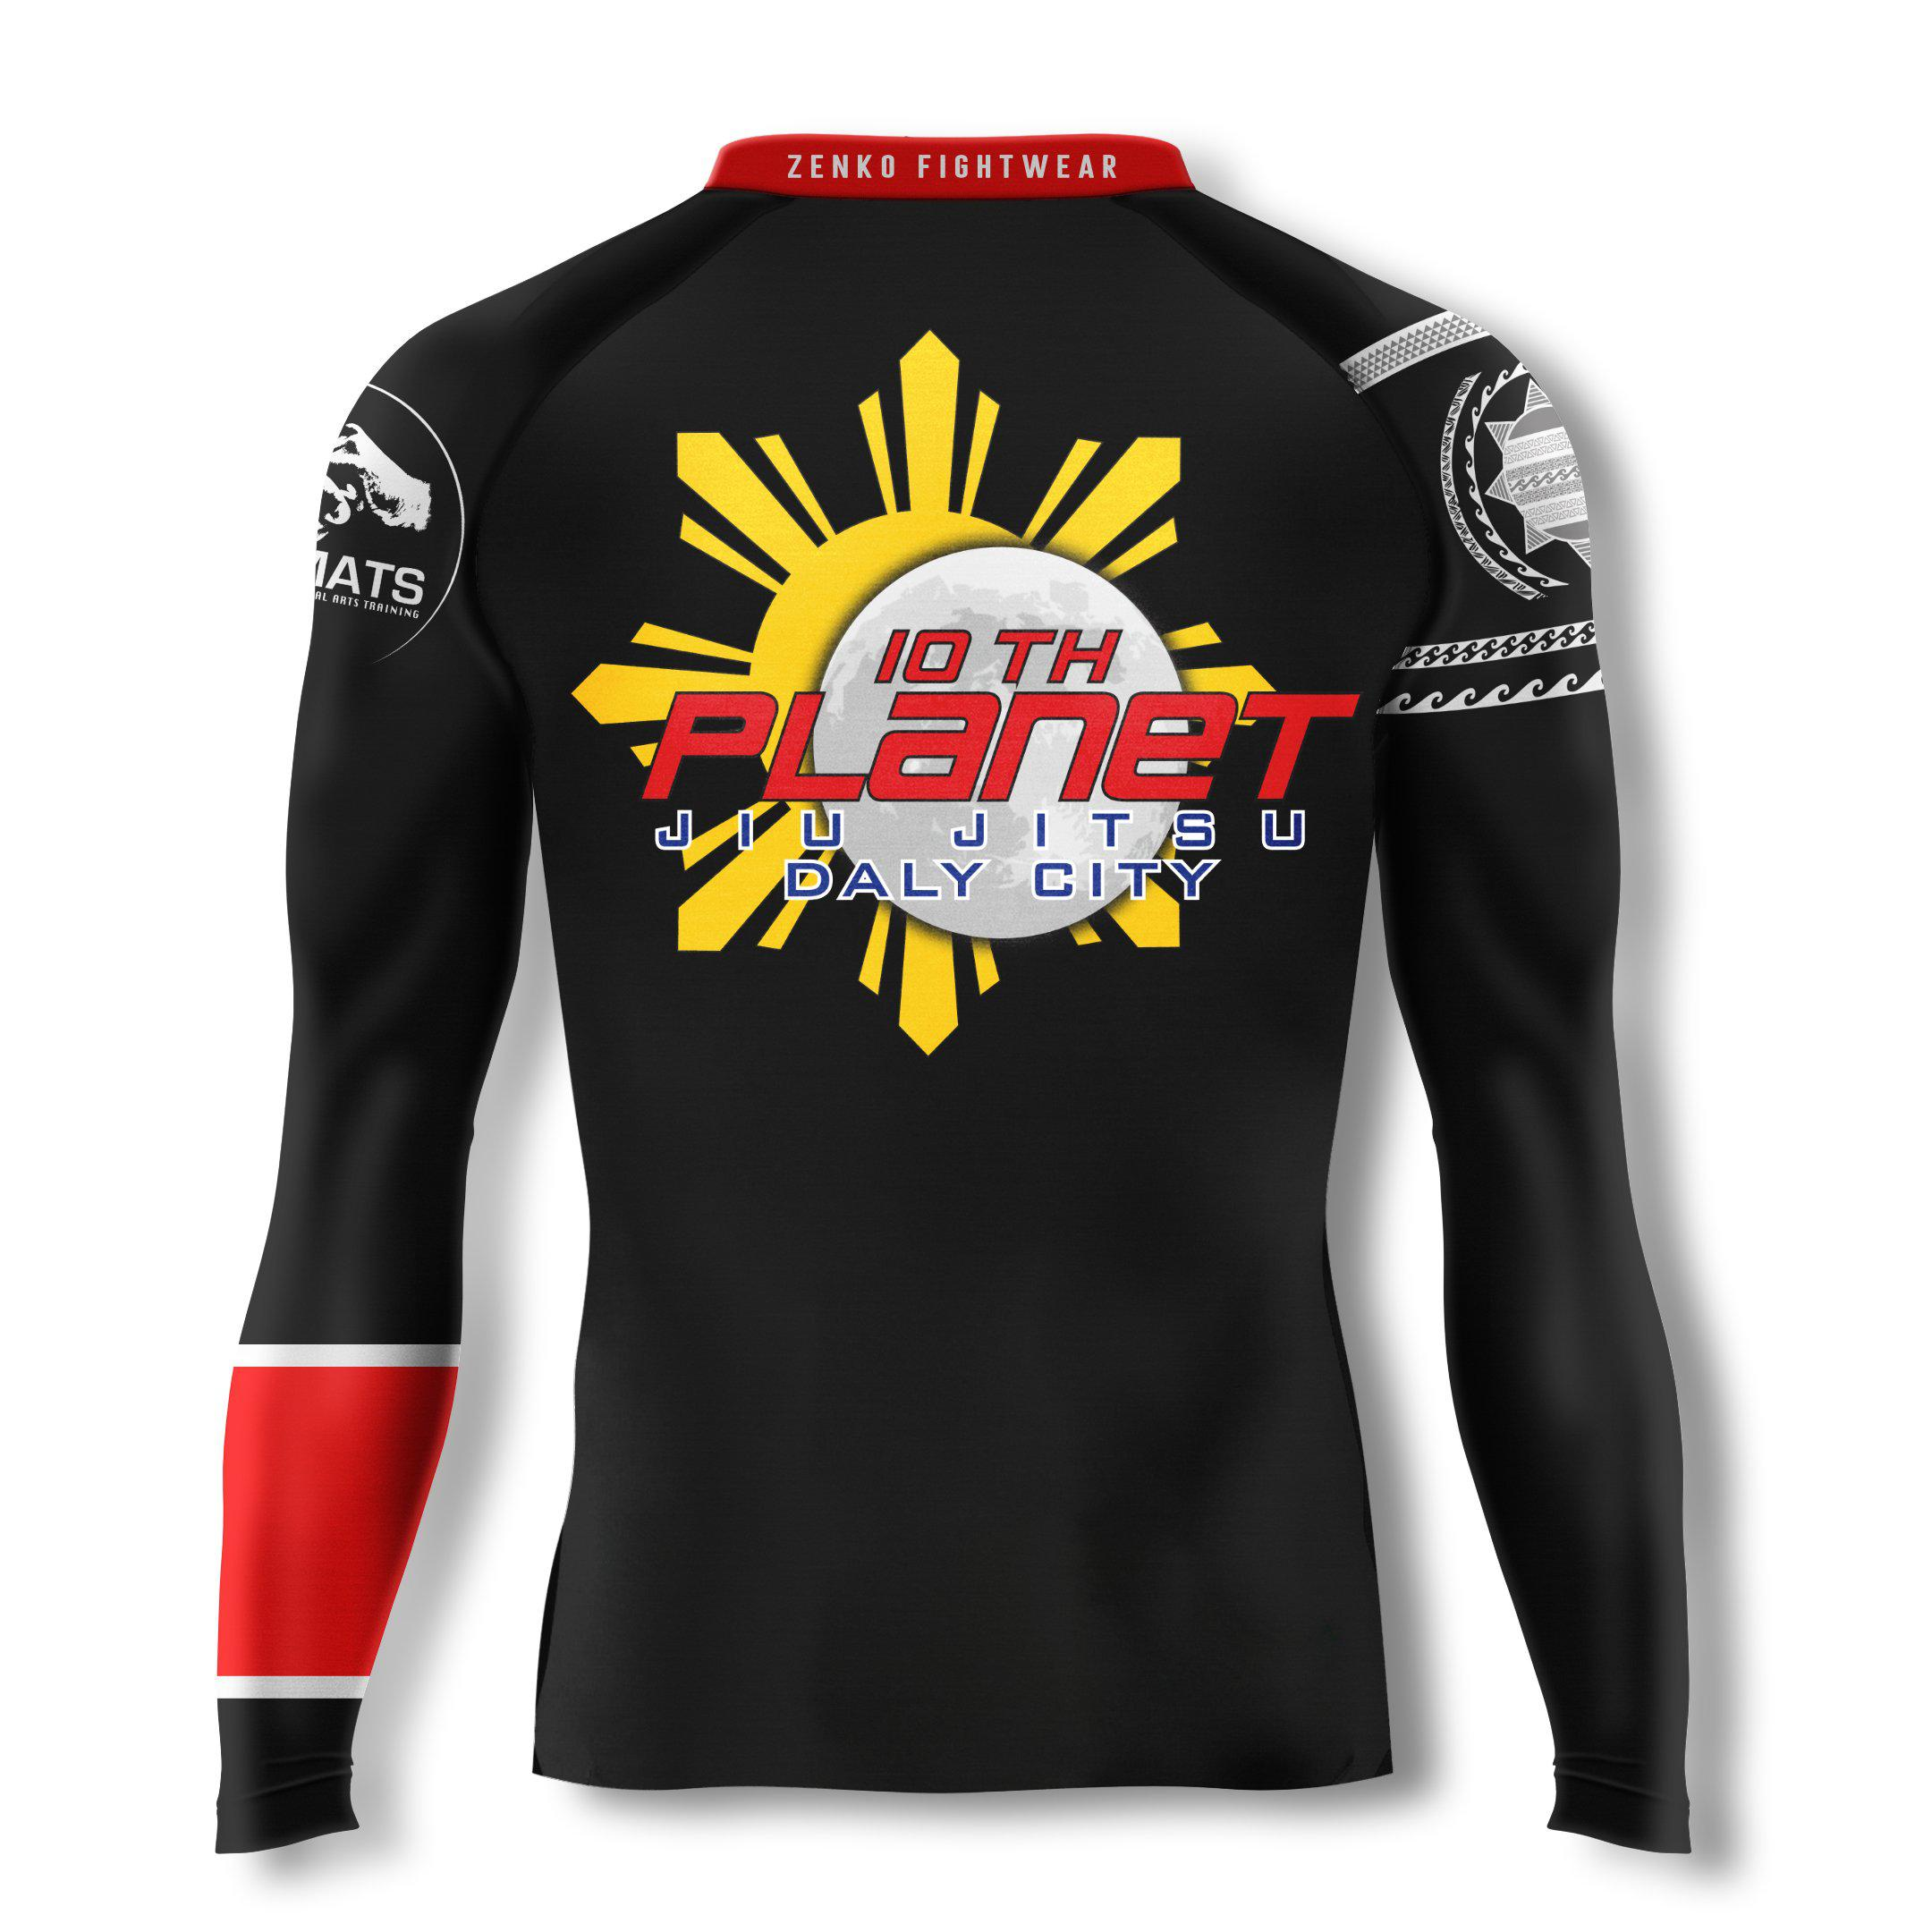 10th Planet Daly City 10PDC Ranked Rashguard (Black) - Zenko Fightwear